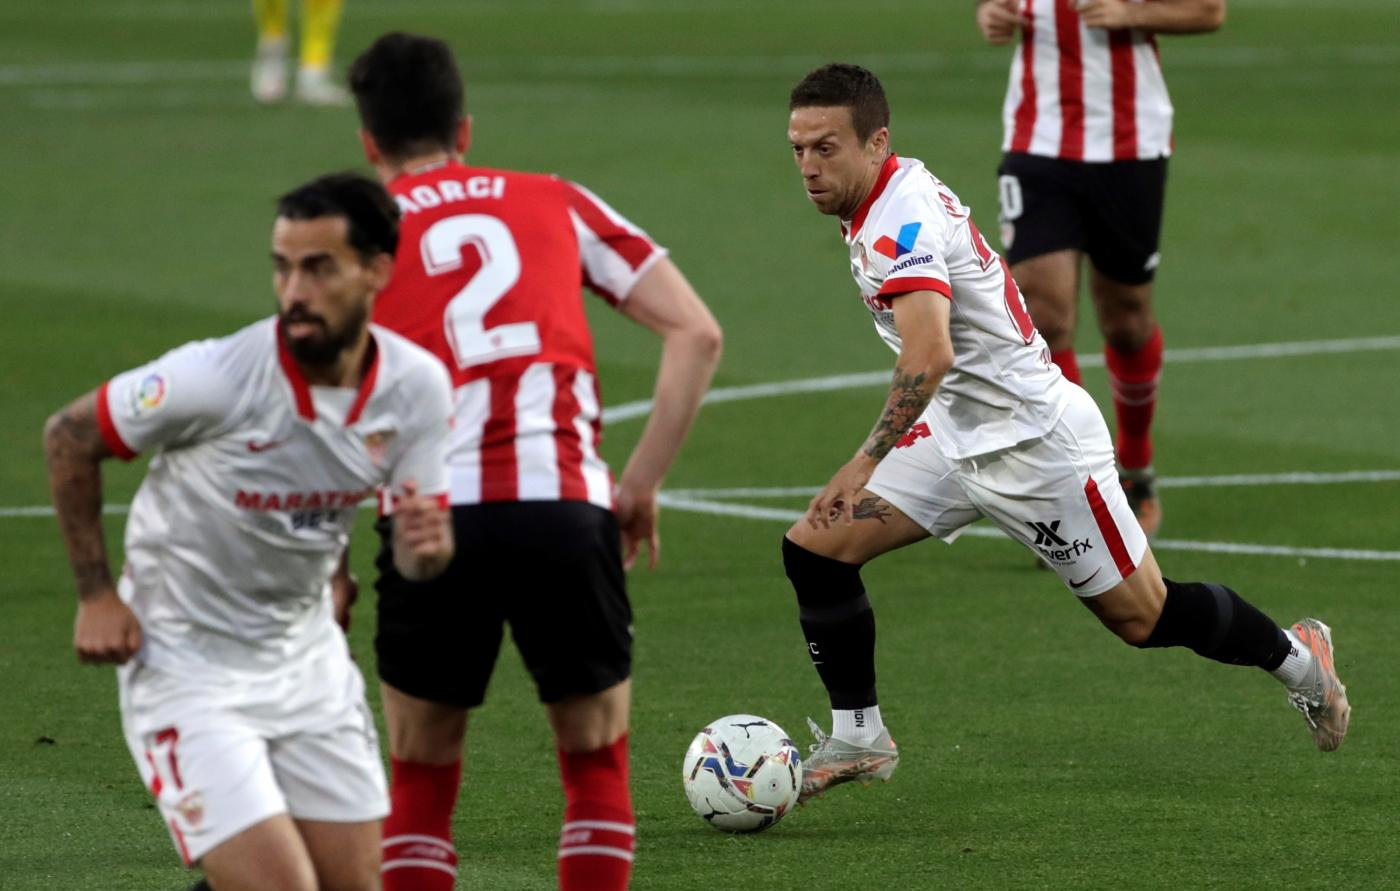 Sevilla-Athletic Club.